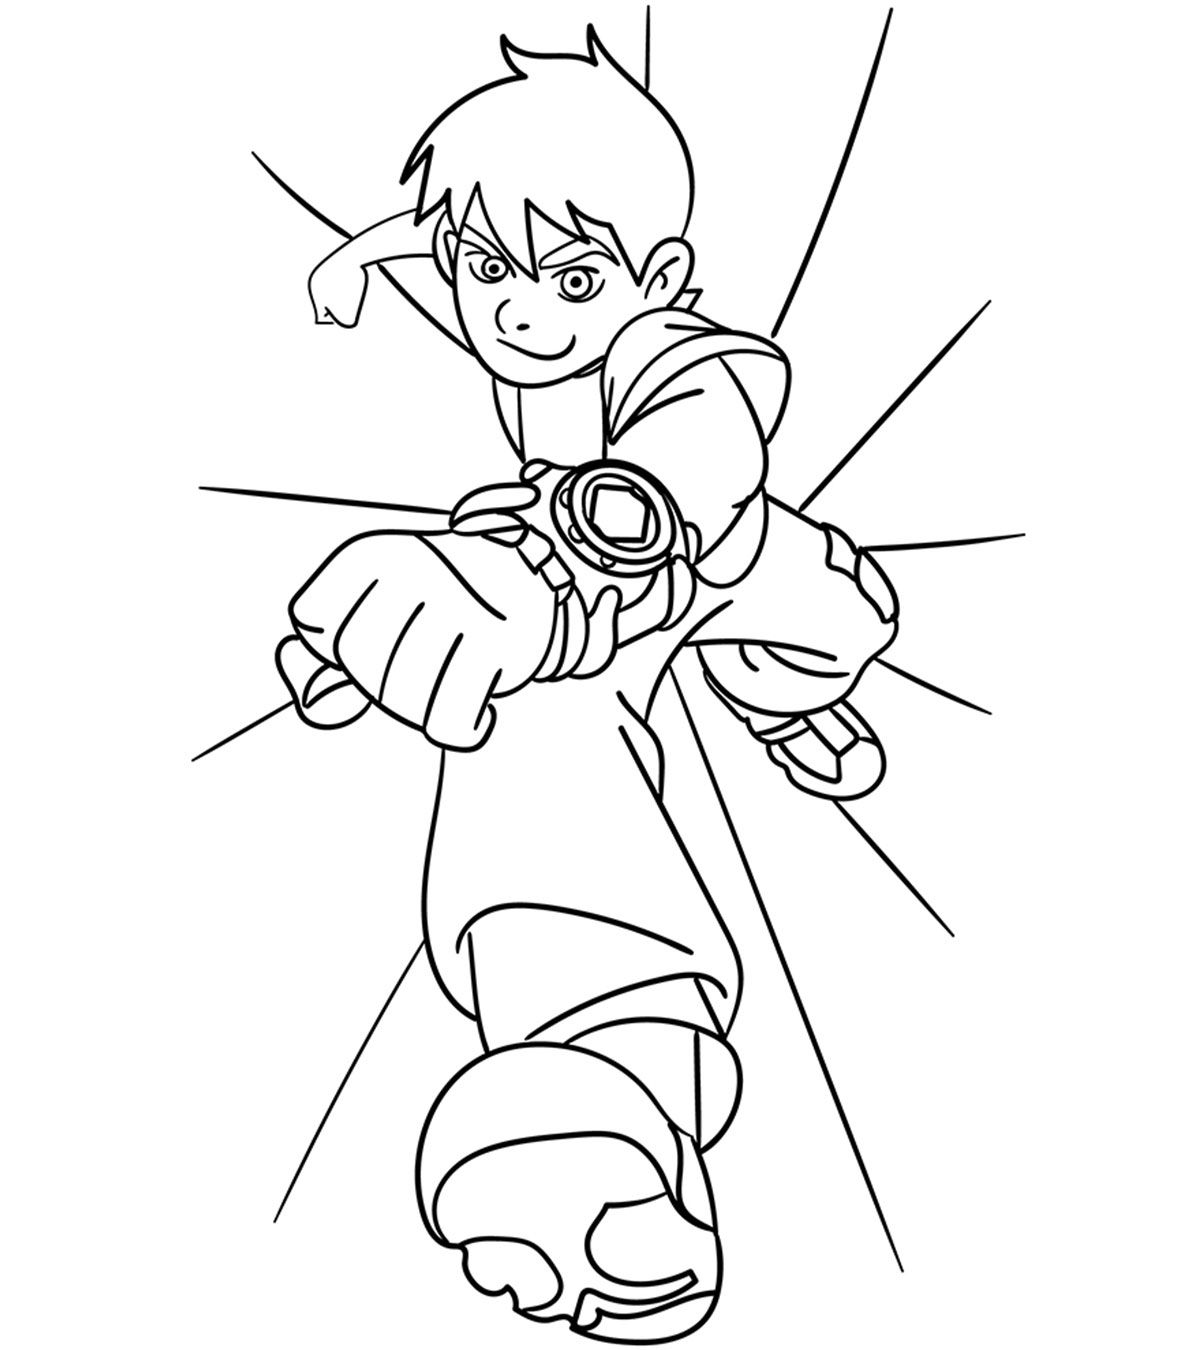 Amazing Ben 10 Coloring Pages Your Toddler Will Love In 2020 Cartoon Coloring Pages Coloring Pages For Boys Coloring Pages